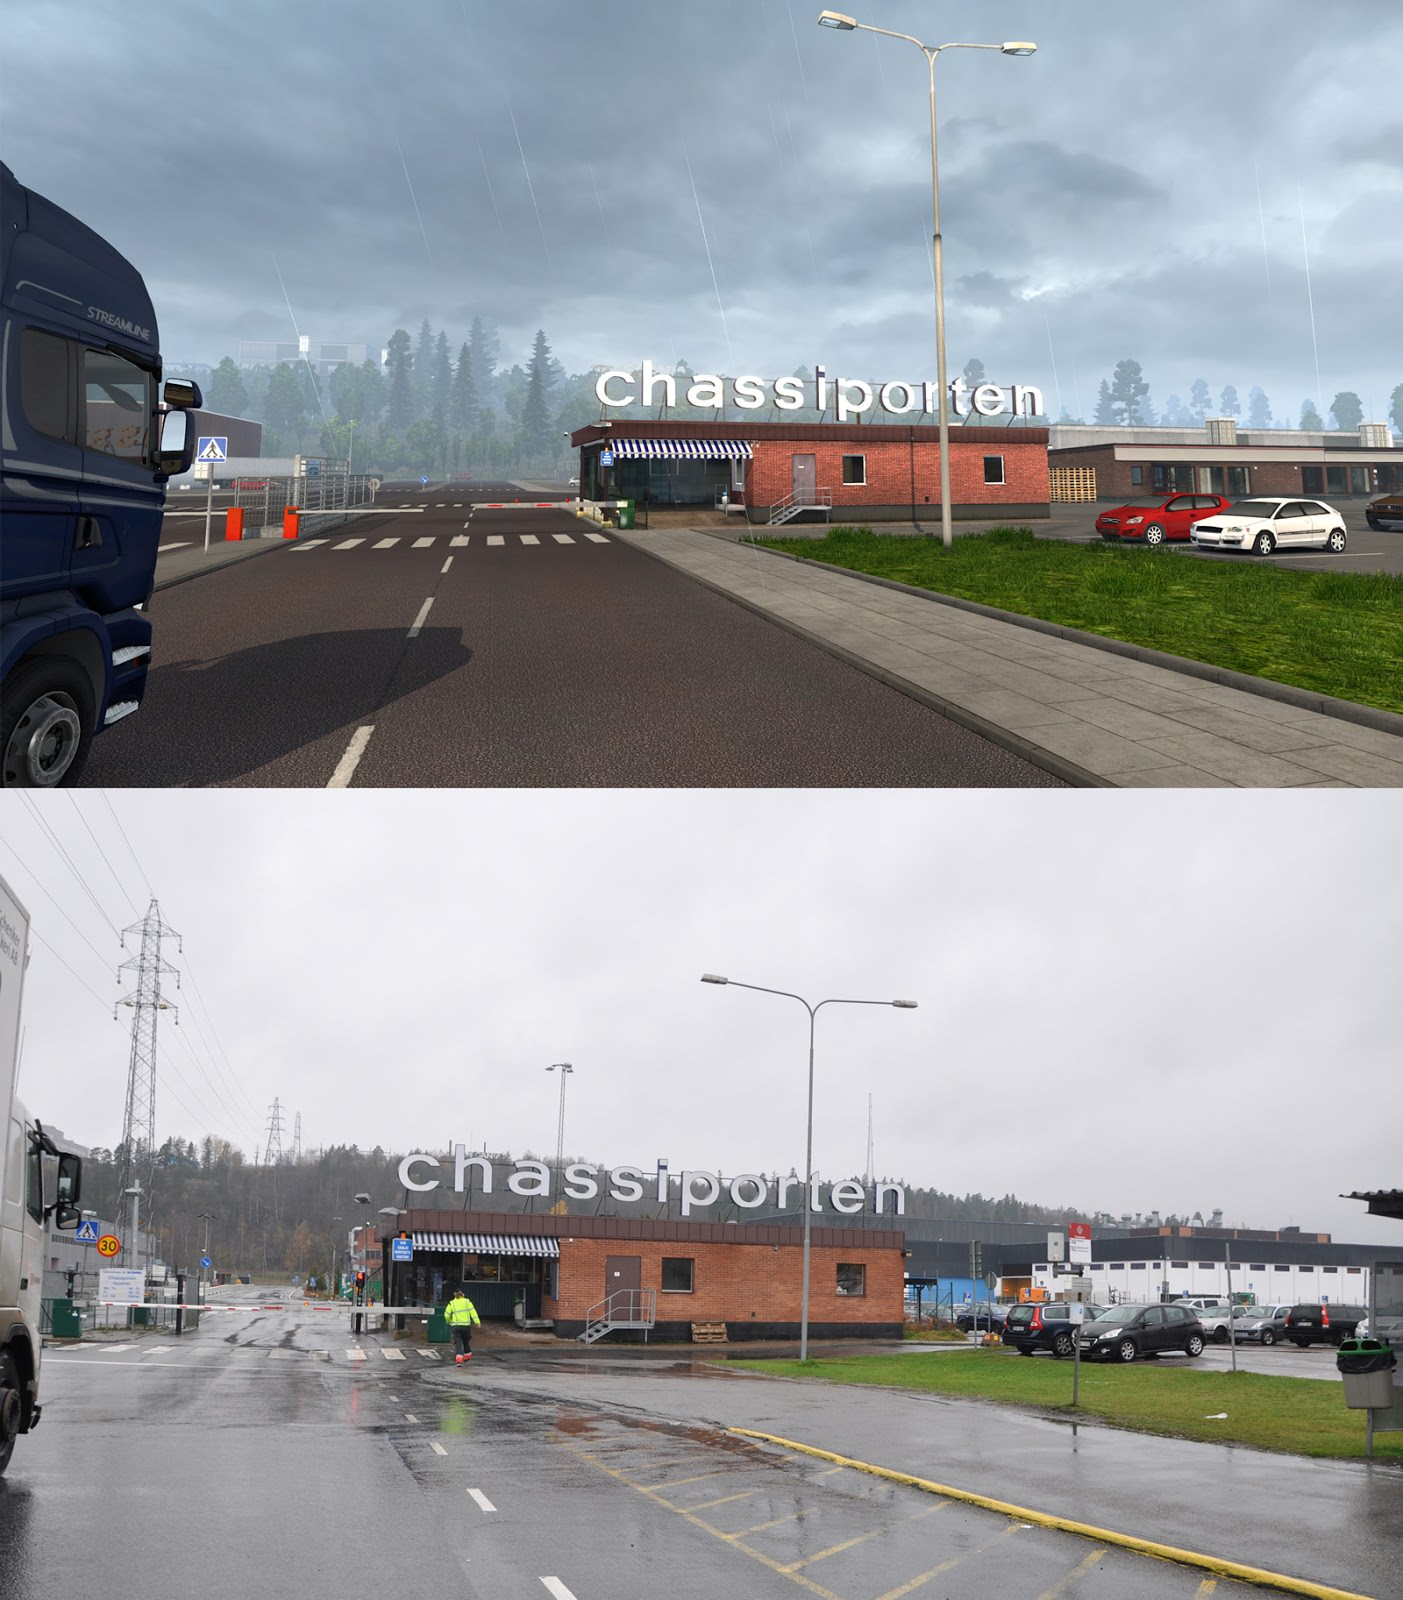 ets2_scania_factory_chassiporten_real_comparison_05